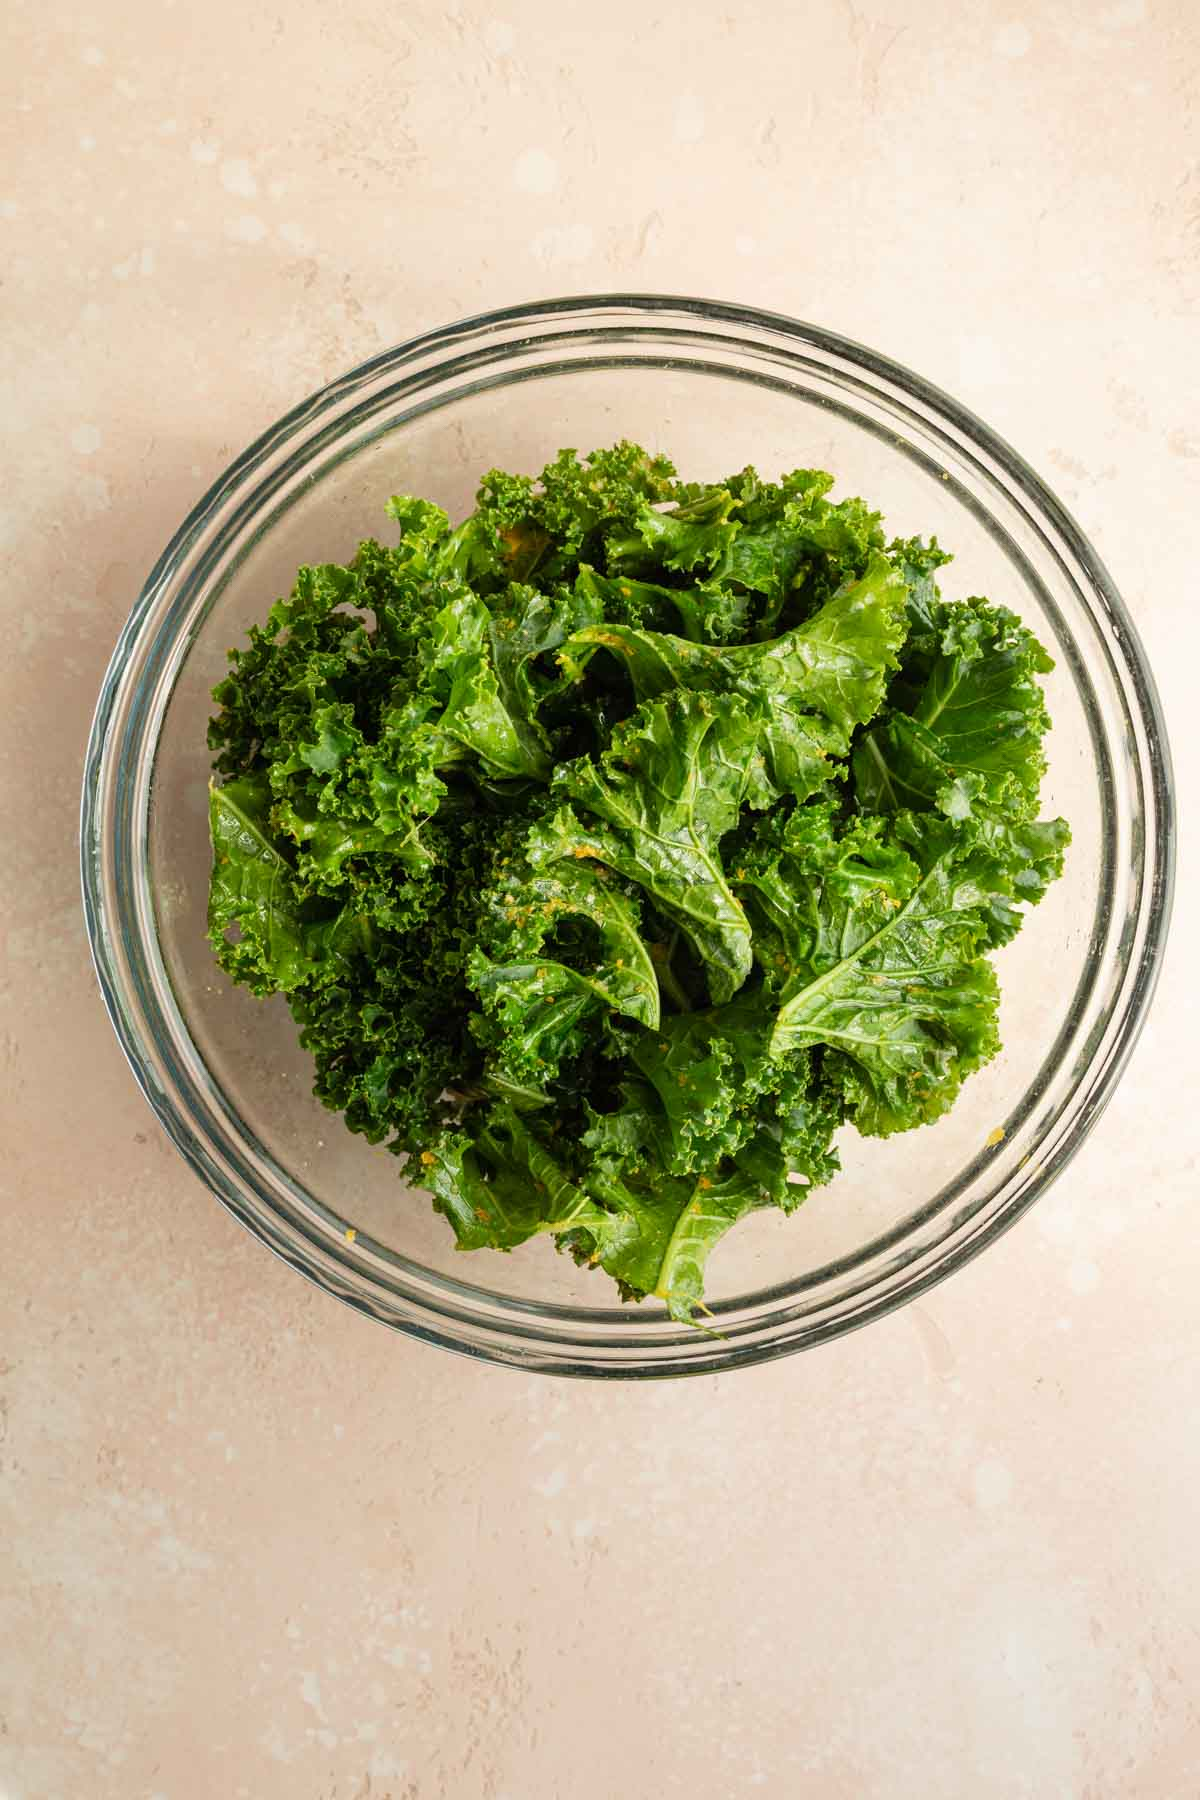 Torn and seasoned pieces of kale in a glass bowl.